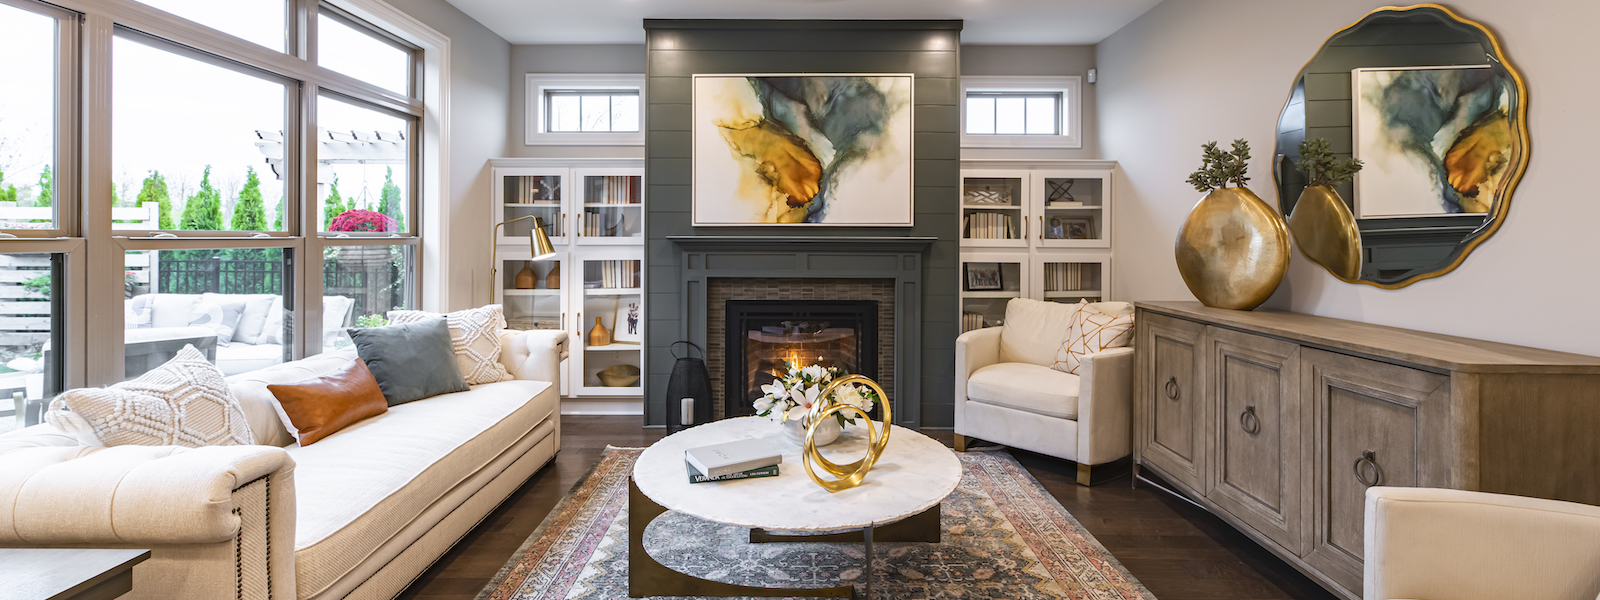 Luxury Townhomes near Raleigh NC   The Townes at West Cary